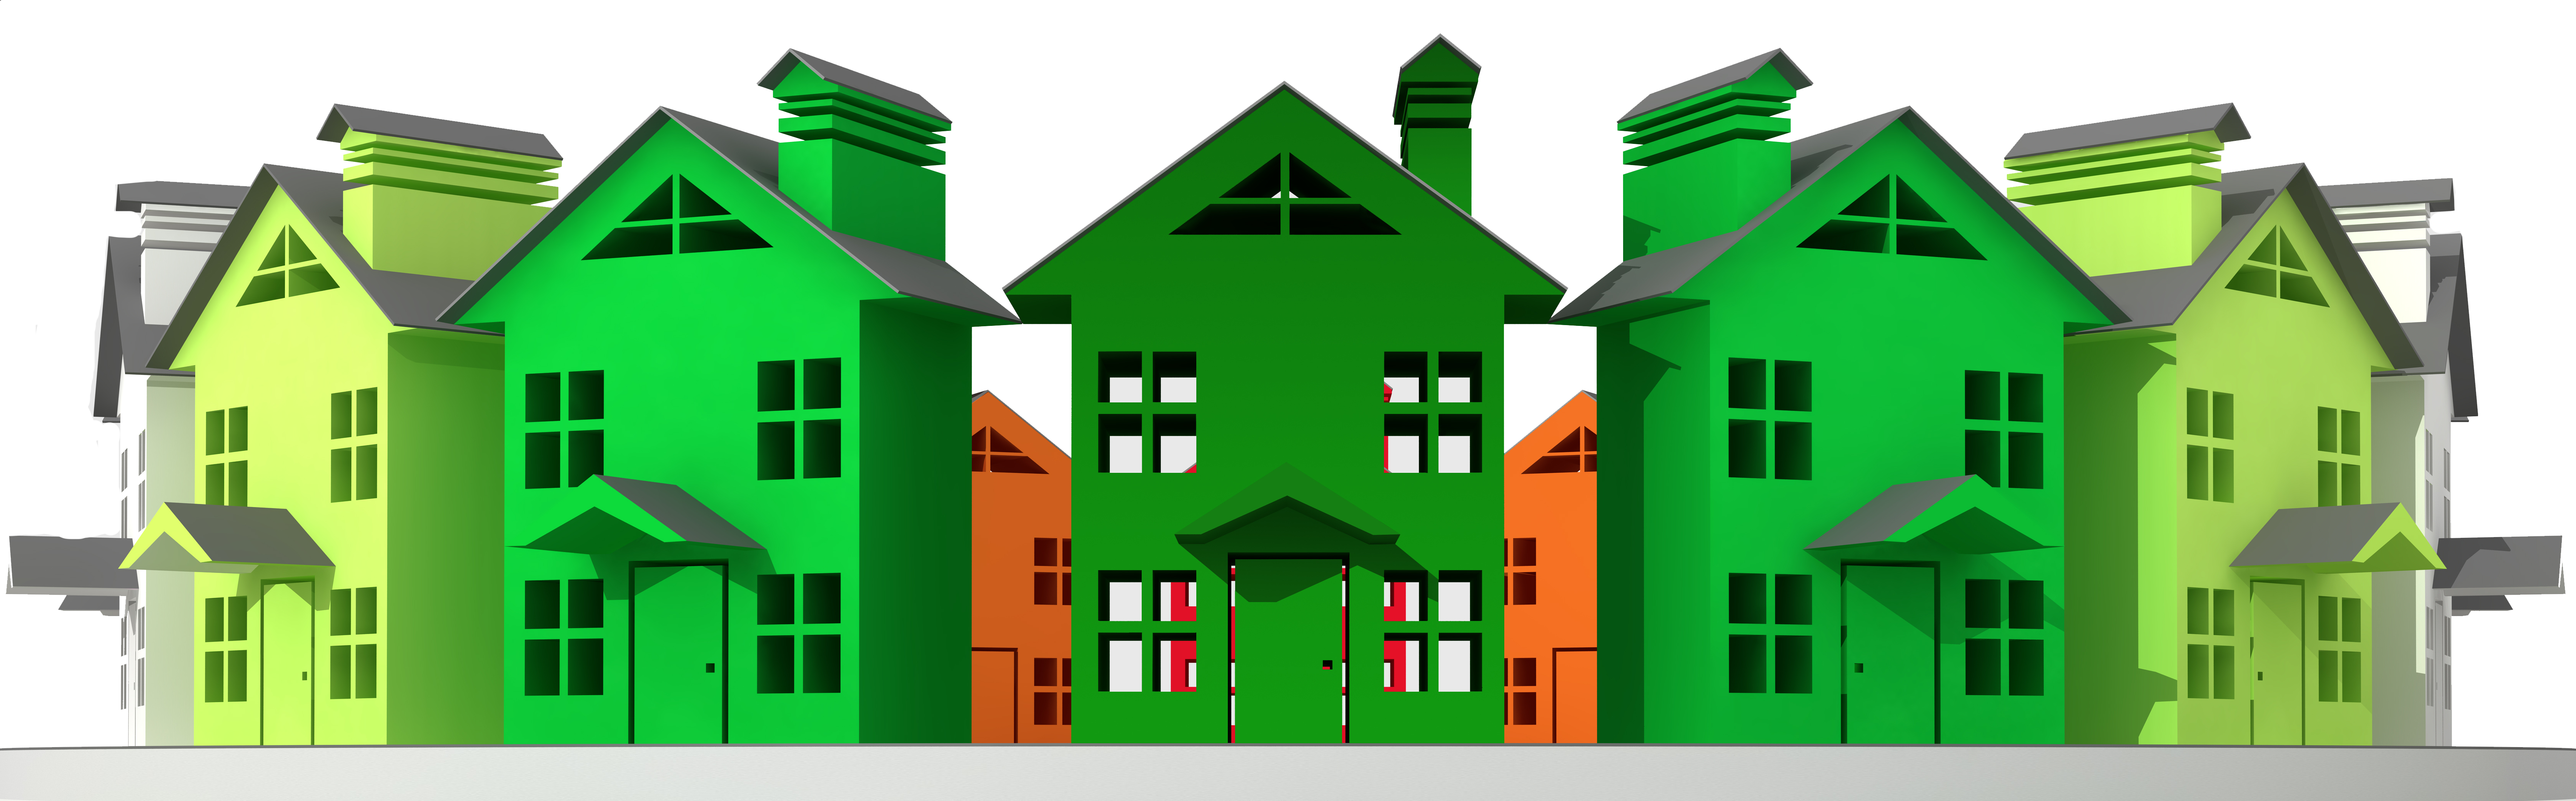 Family in house clipart graphic black and white library Multi-Family Construction Request graphic black and white library